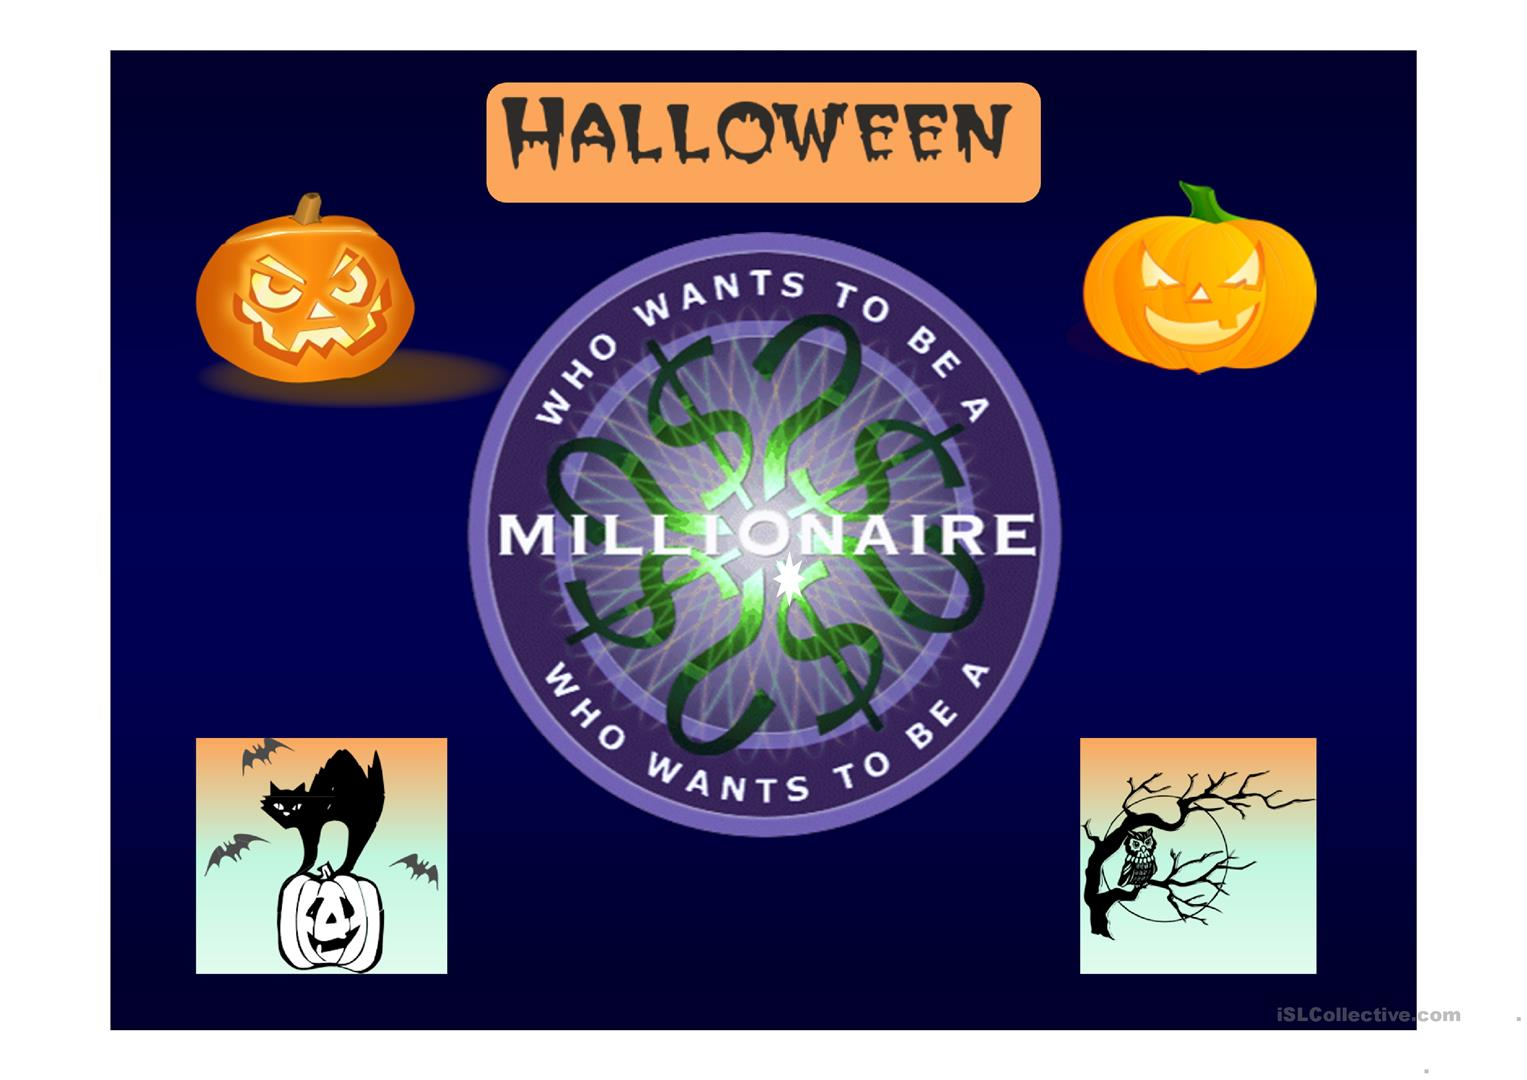 23 free esl millionaire powerpoint presentations, exercises, Powerpoint templates